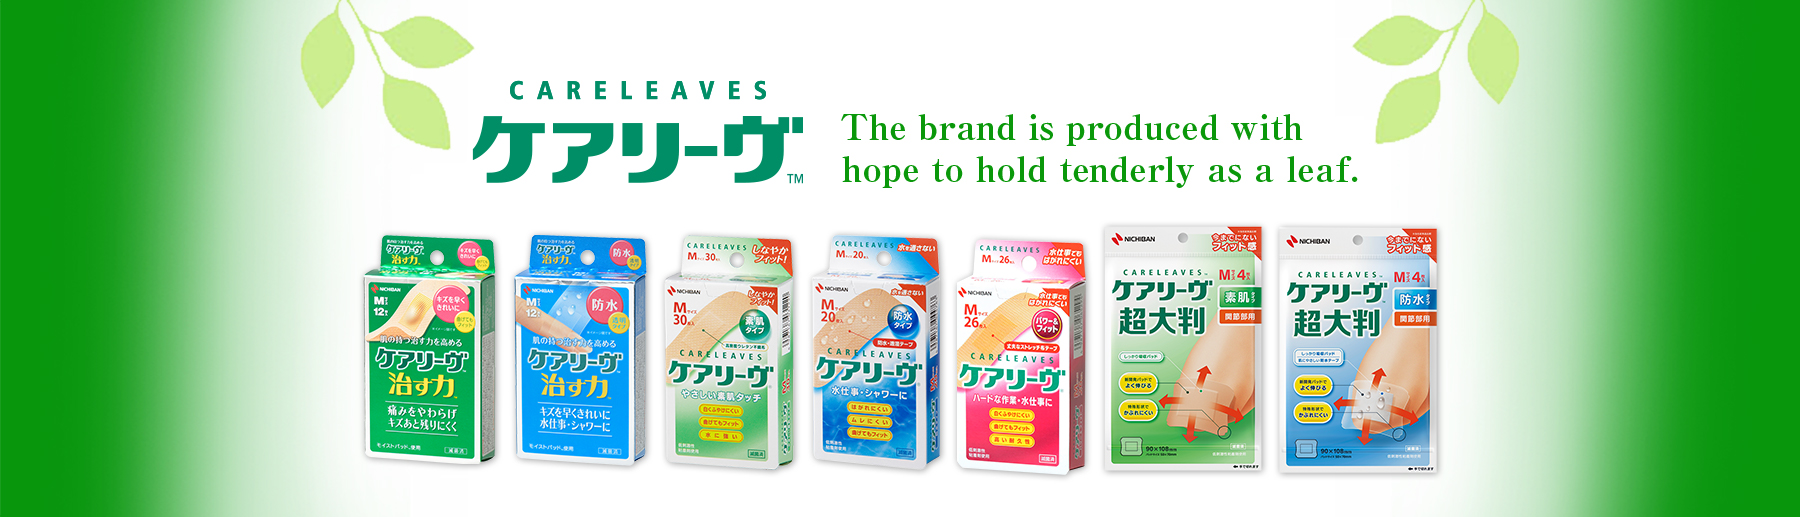 The brand is produced with hope to hold tenderly as a leaf.